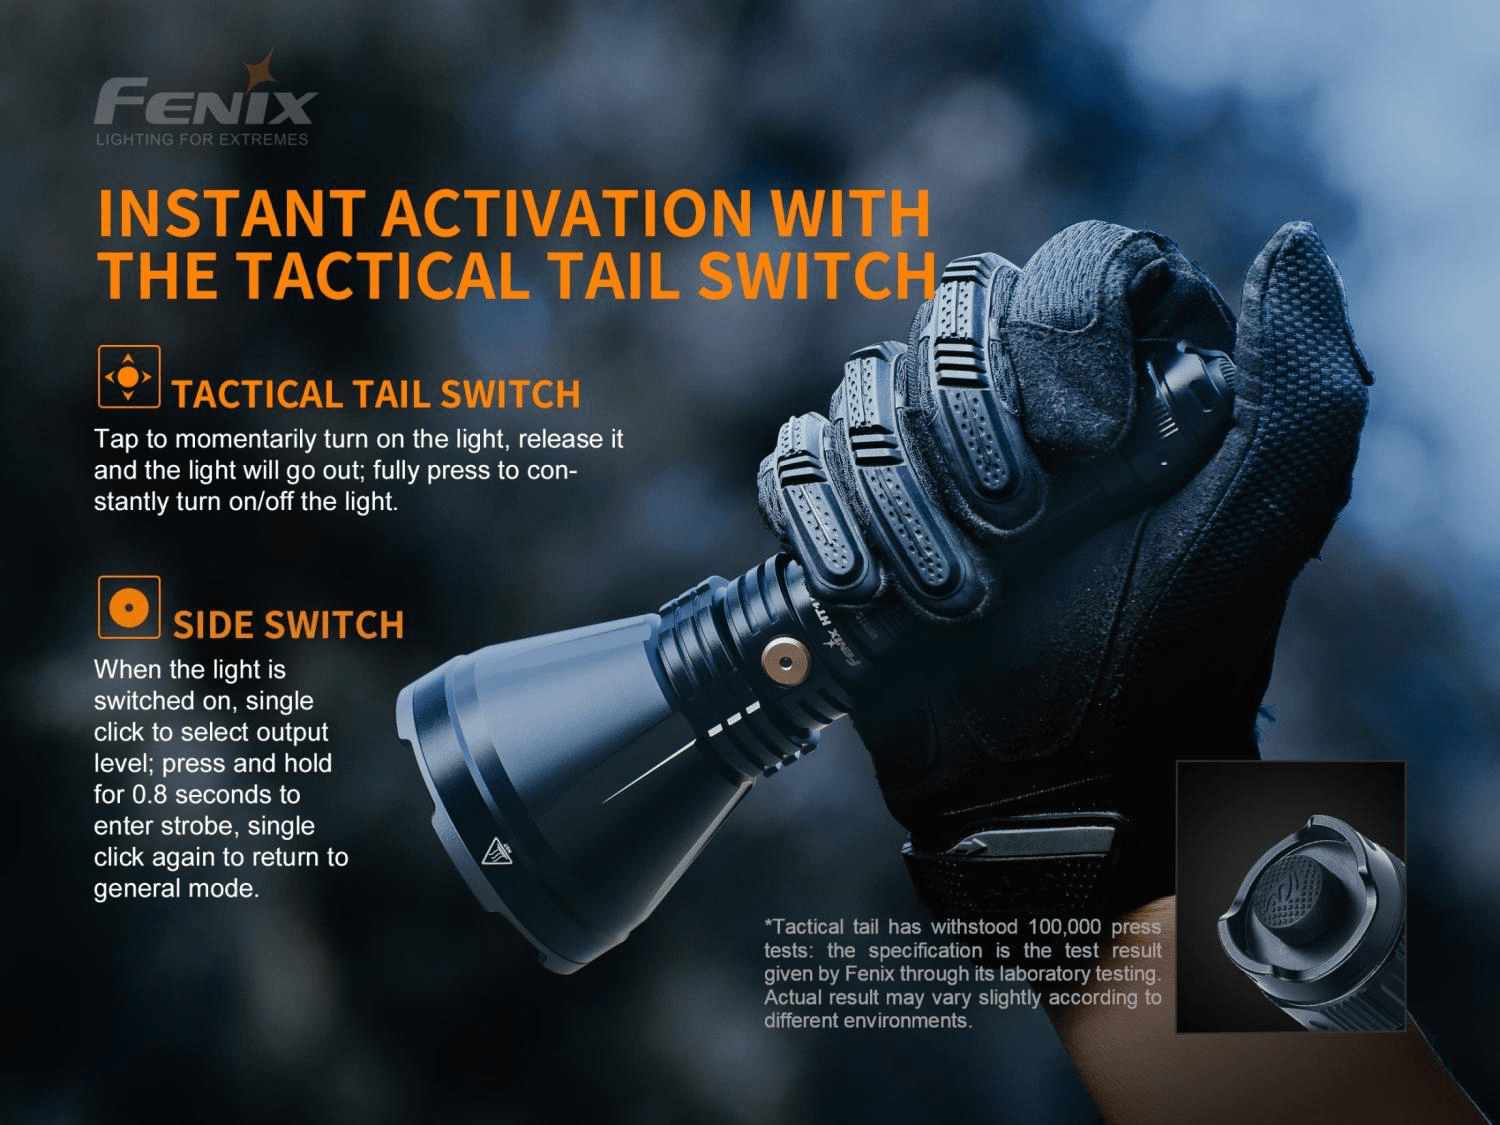 Fenix HT18 LED SpotLight In India, 1km Long Range Powerful Torch, Spot Light Rechargeable Searchlight for Outdoors, Hunting Treks, Policing, Red and Green Filters Light